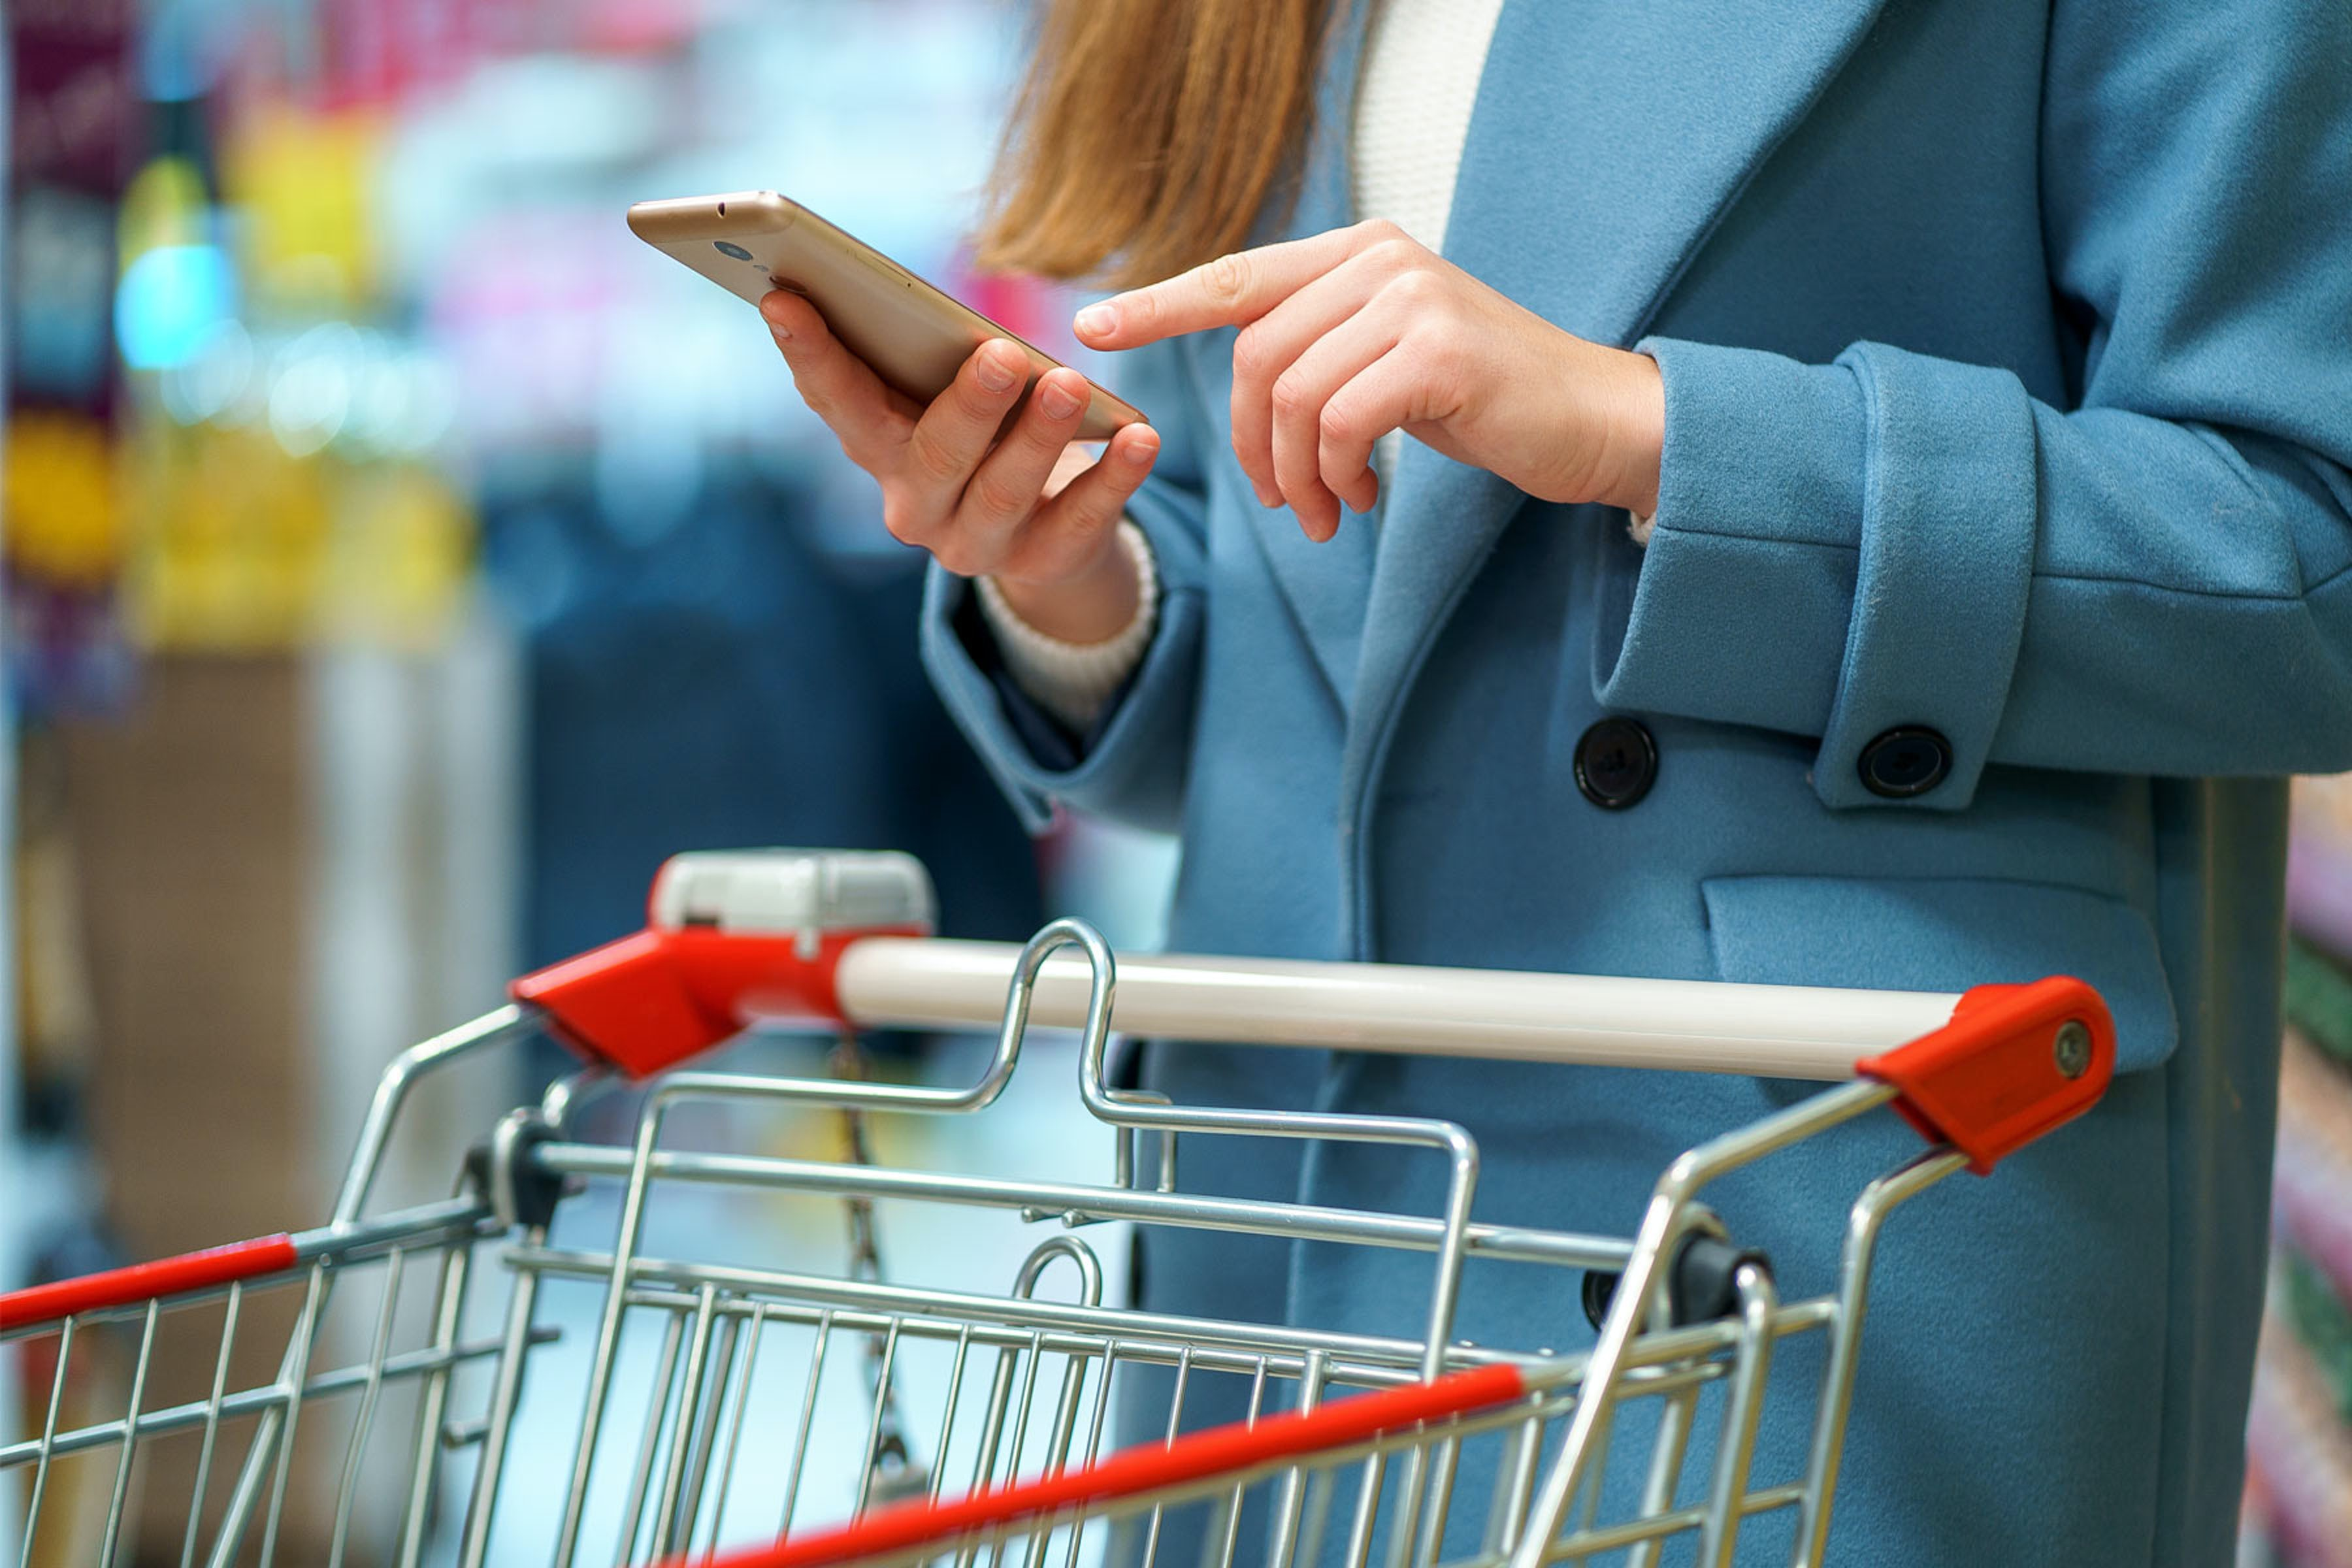 woman using trolley in grocery store on smartphone